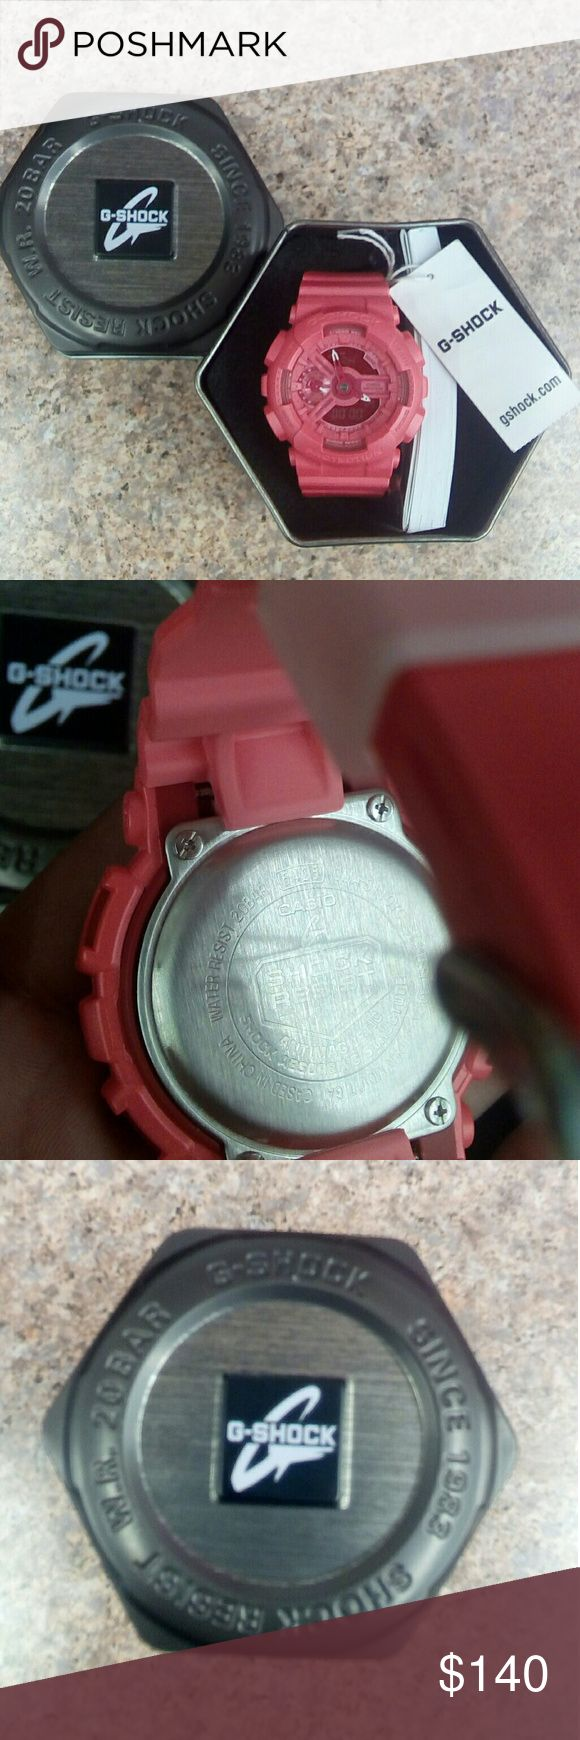 Unisex G-Shock Watch W/Tin Case Nwt Never worn Vibrant color. Brand new never worn still has tag and the tin case and manuel included. Great to have in your watch collection G-Shock Accessories